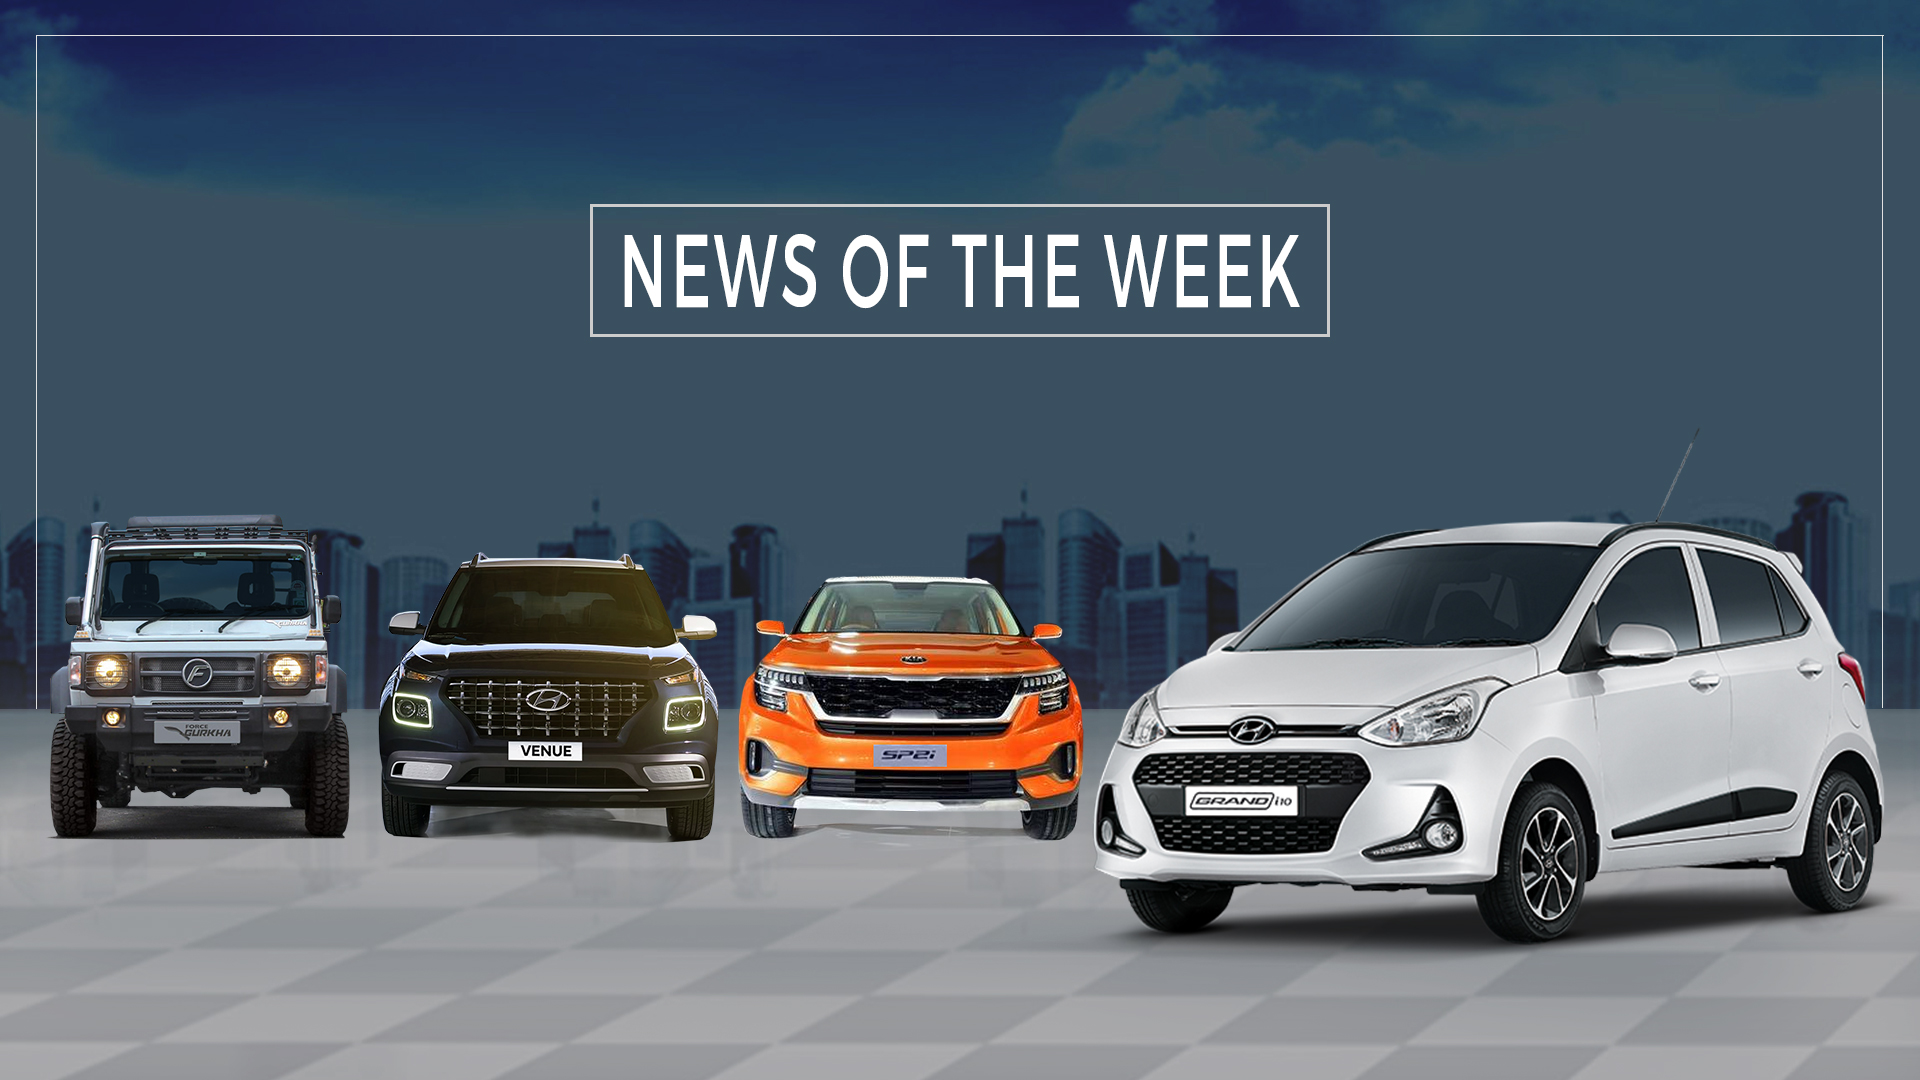 News of the week: Hyundai introduces a CNG model for the Grand I10